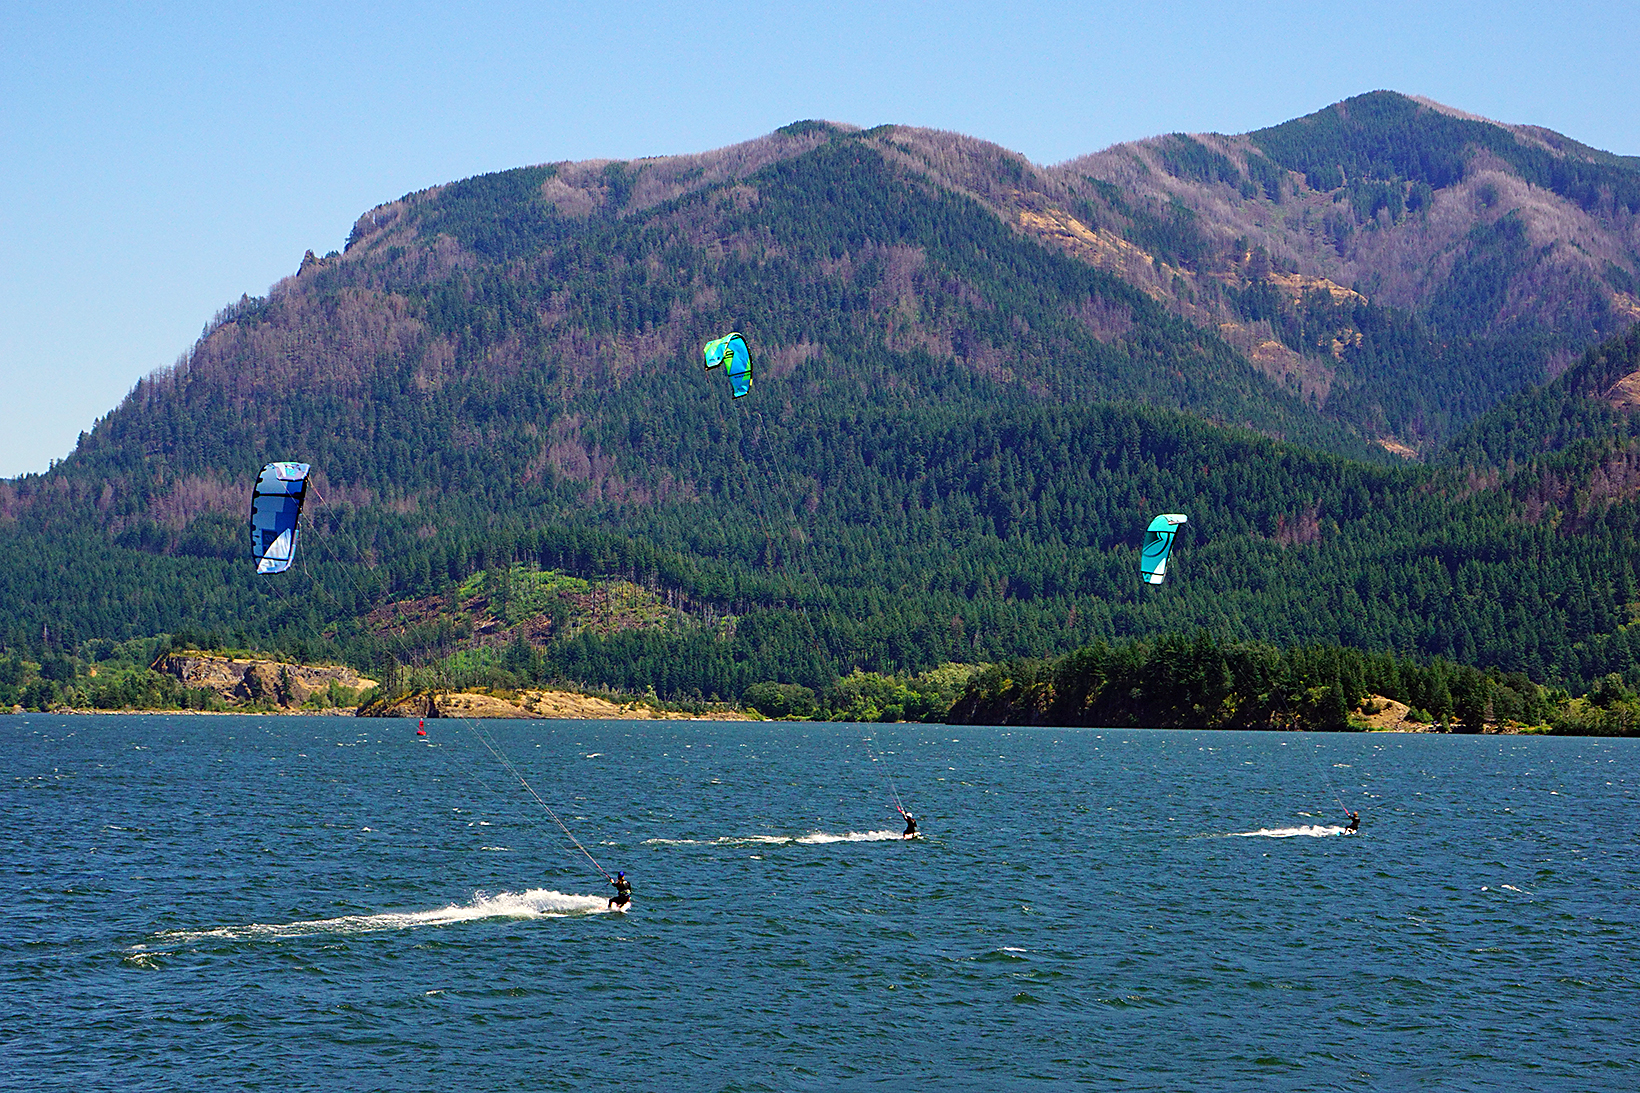 Kiteboarders enjoy a beautiful summer day catching wind in their kites on the Columbia River